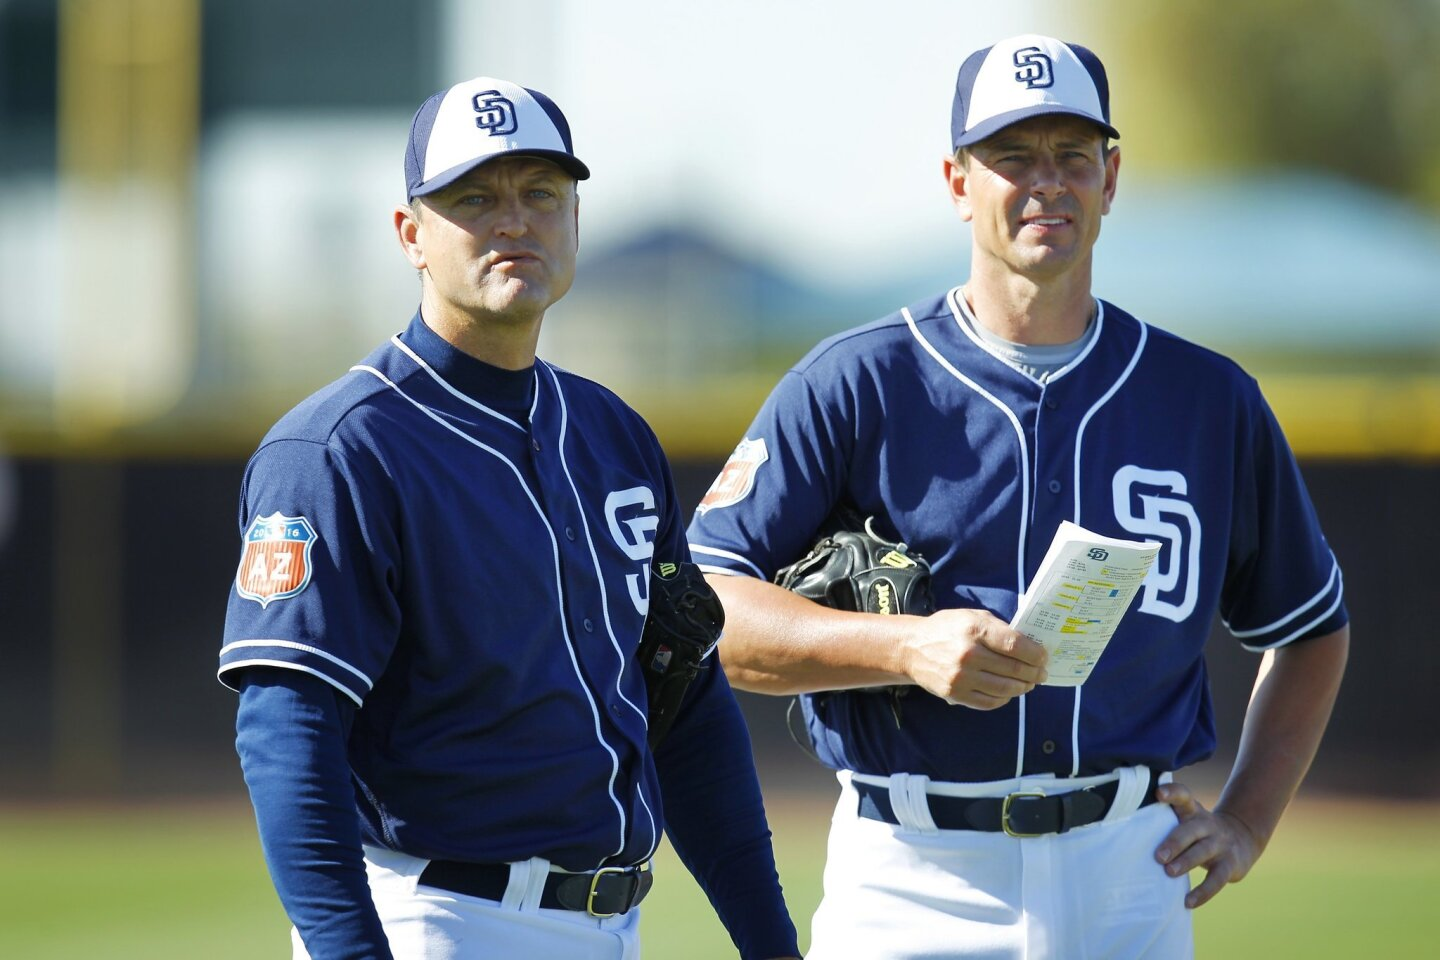 Former San Diego Padres pitchers Trevor Hoffman and Andy Ashby talk during a spring training practice.